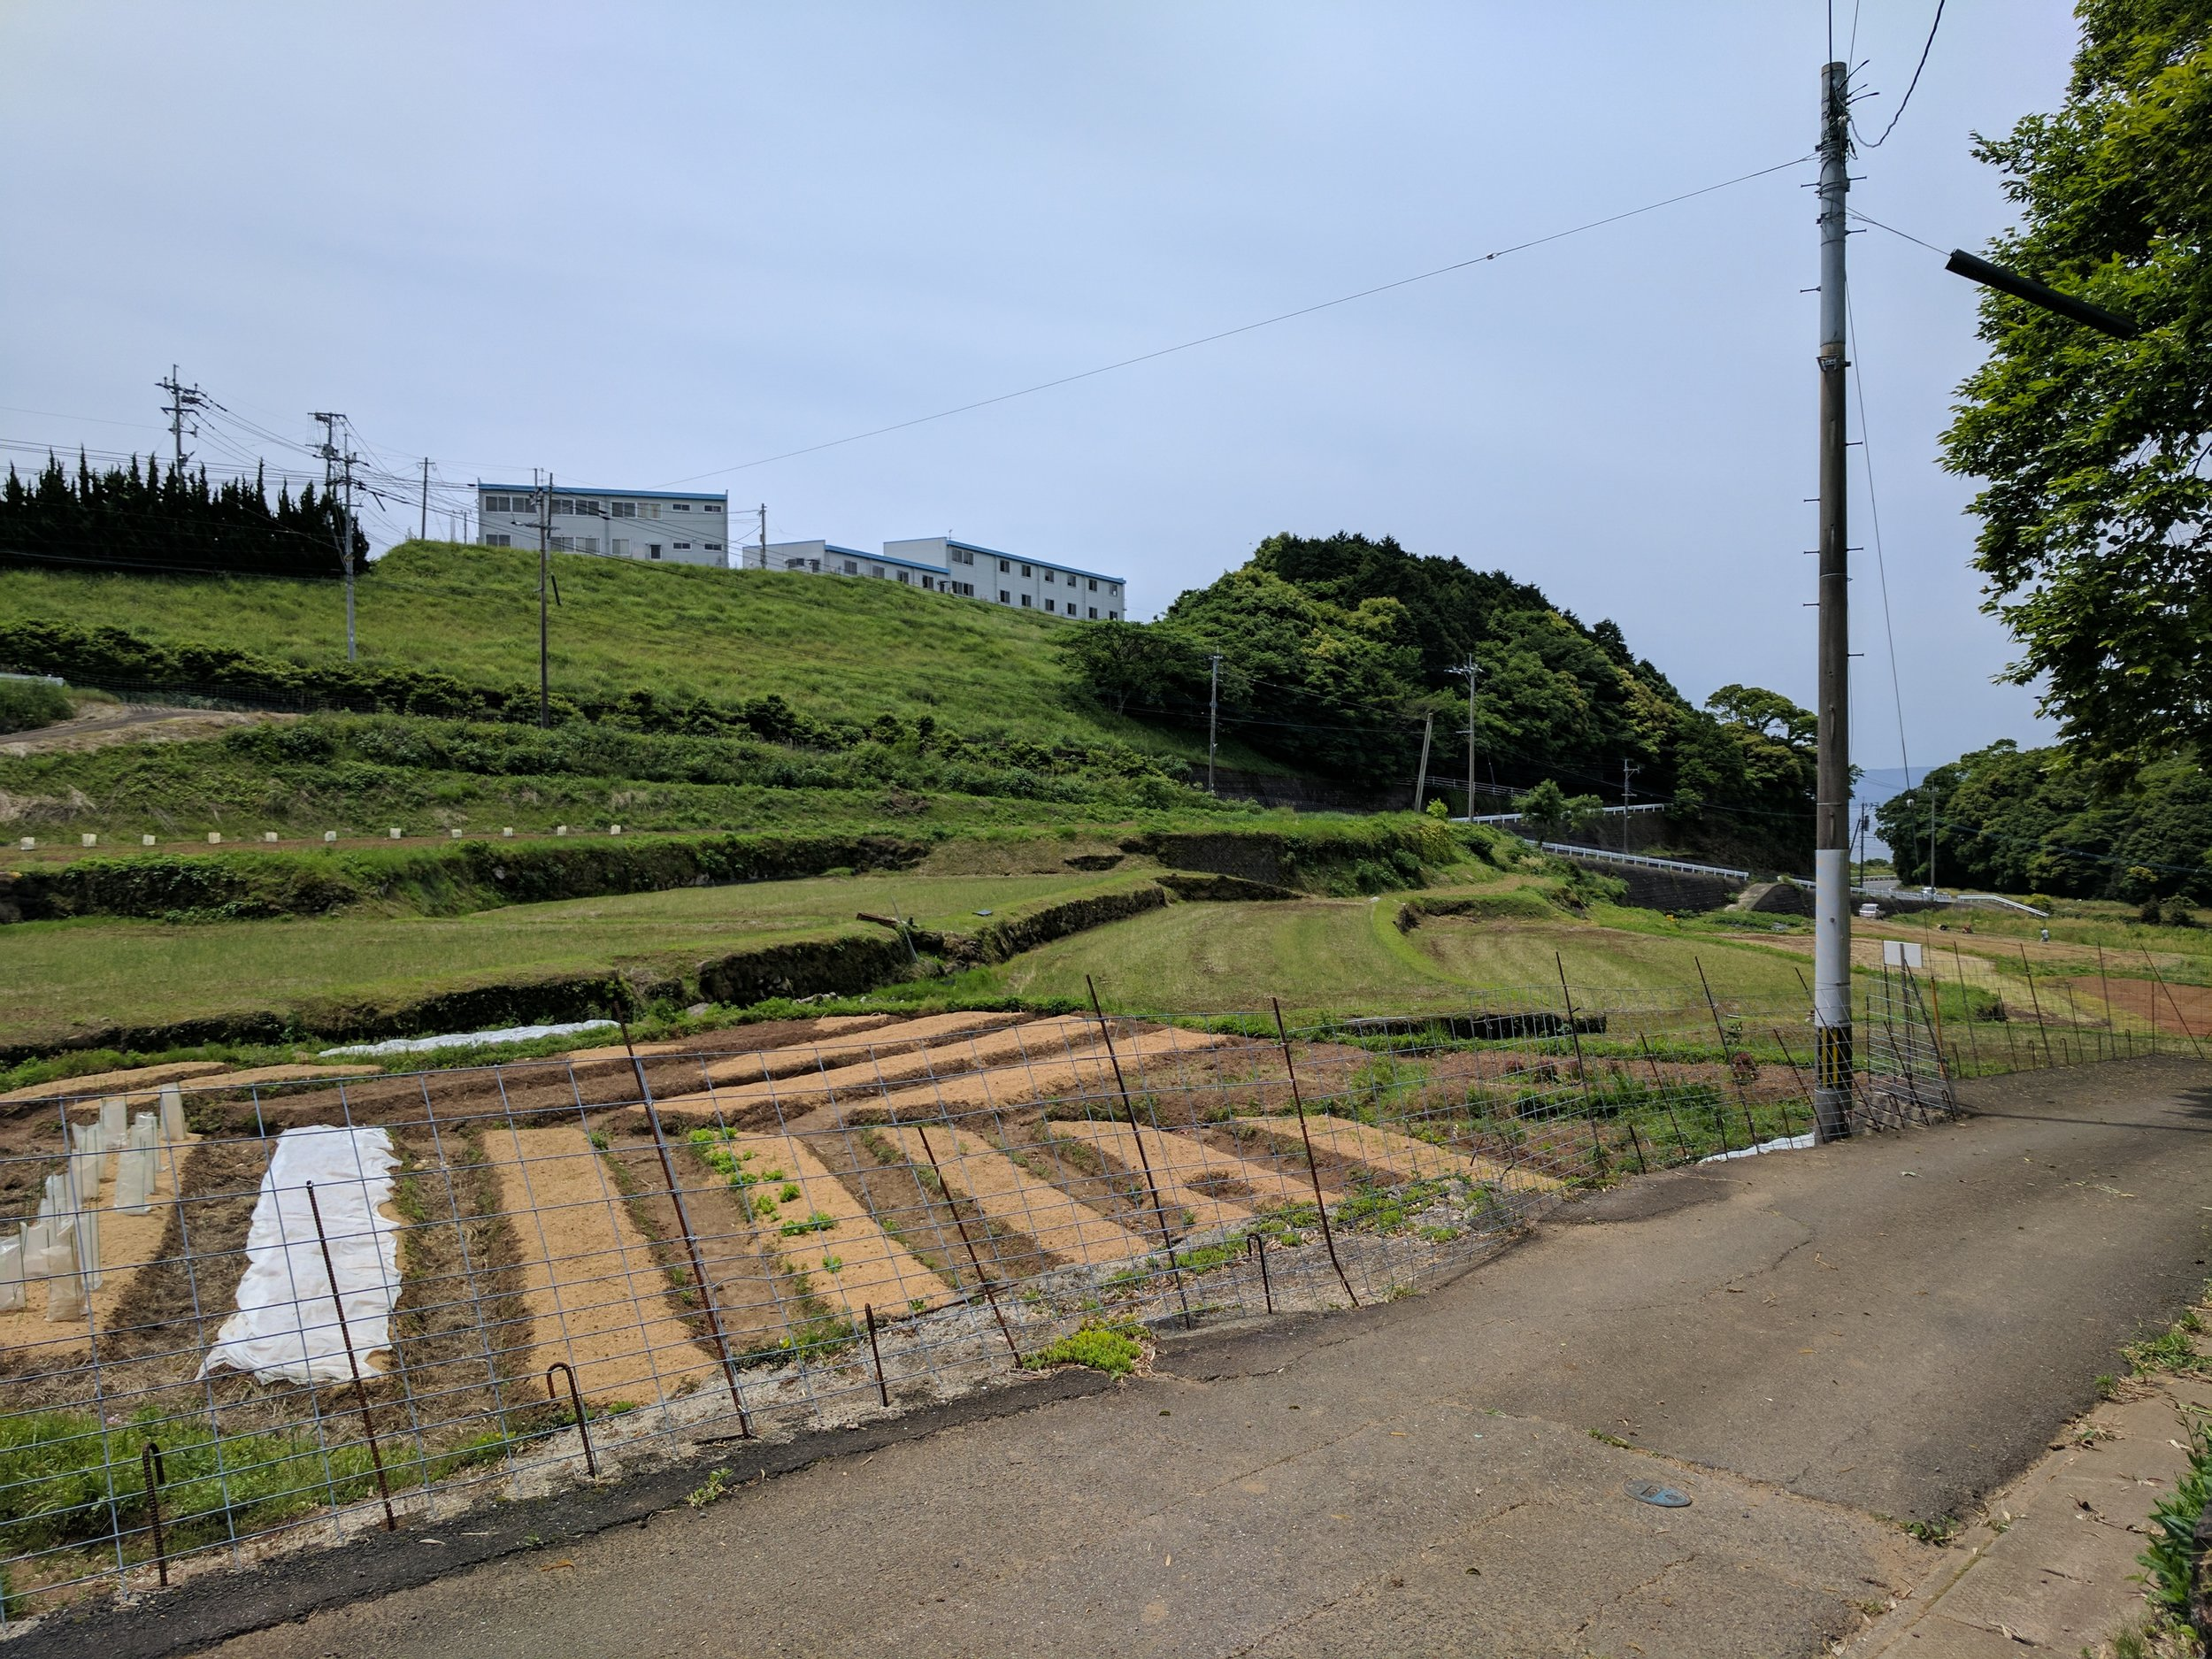 WWOOF farm outside Nagasaki. I stayed here with Yuki on Airbnb because it was on the way to the airport, but Yuki runs a real farm and takes longer term volunteers!